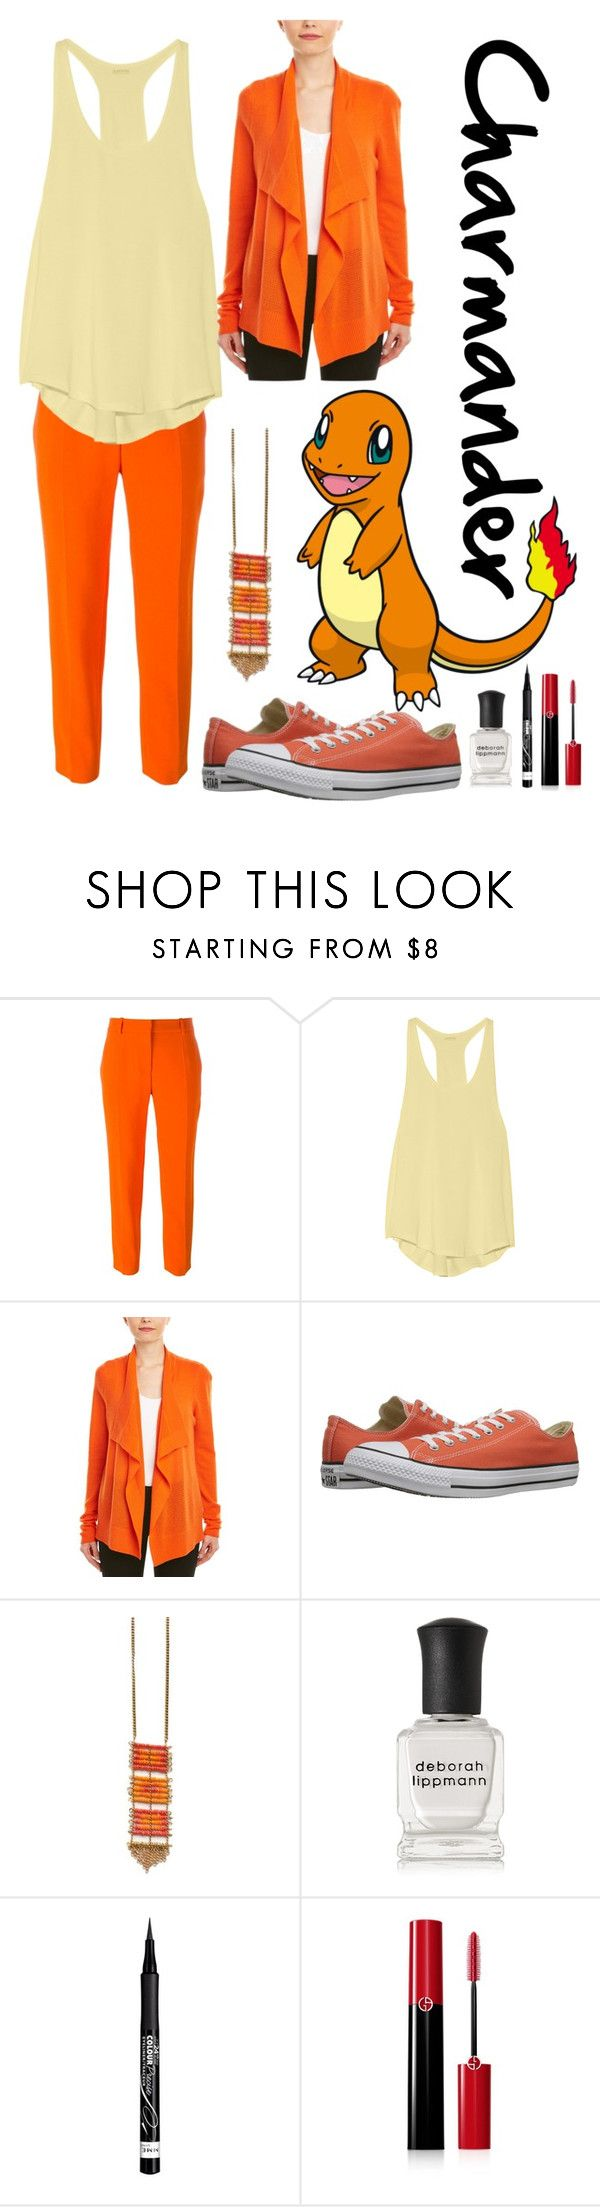 """Charmander"" by xxmonnyxx on Polyvore featuring STELLA McCARTNEY, Yummie by Heather Thomson, Magaschoni, Converse, Deborah Lippmann, Rimmel and Giorgio Armani"